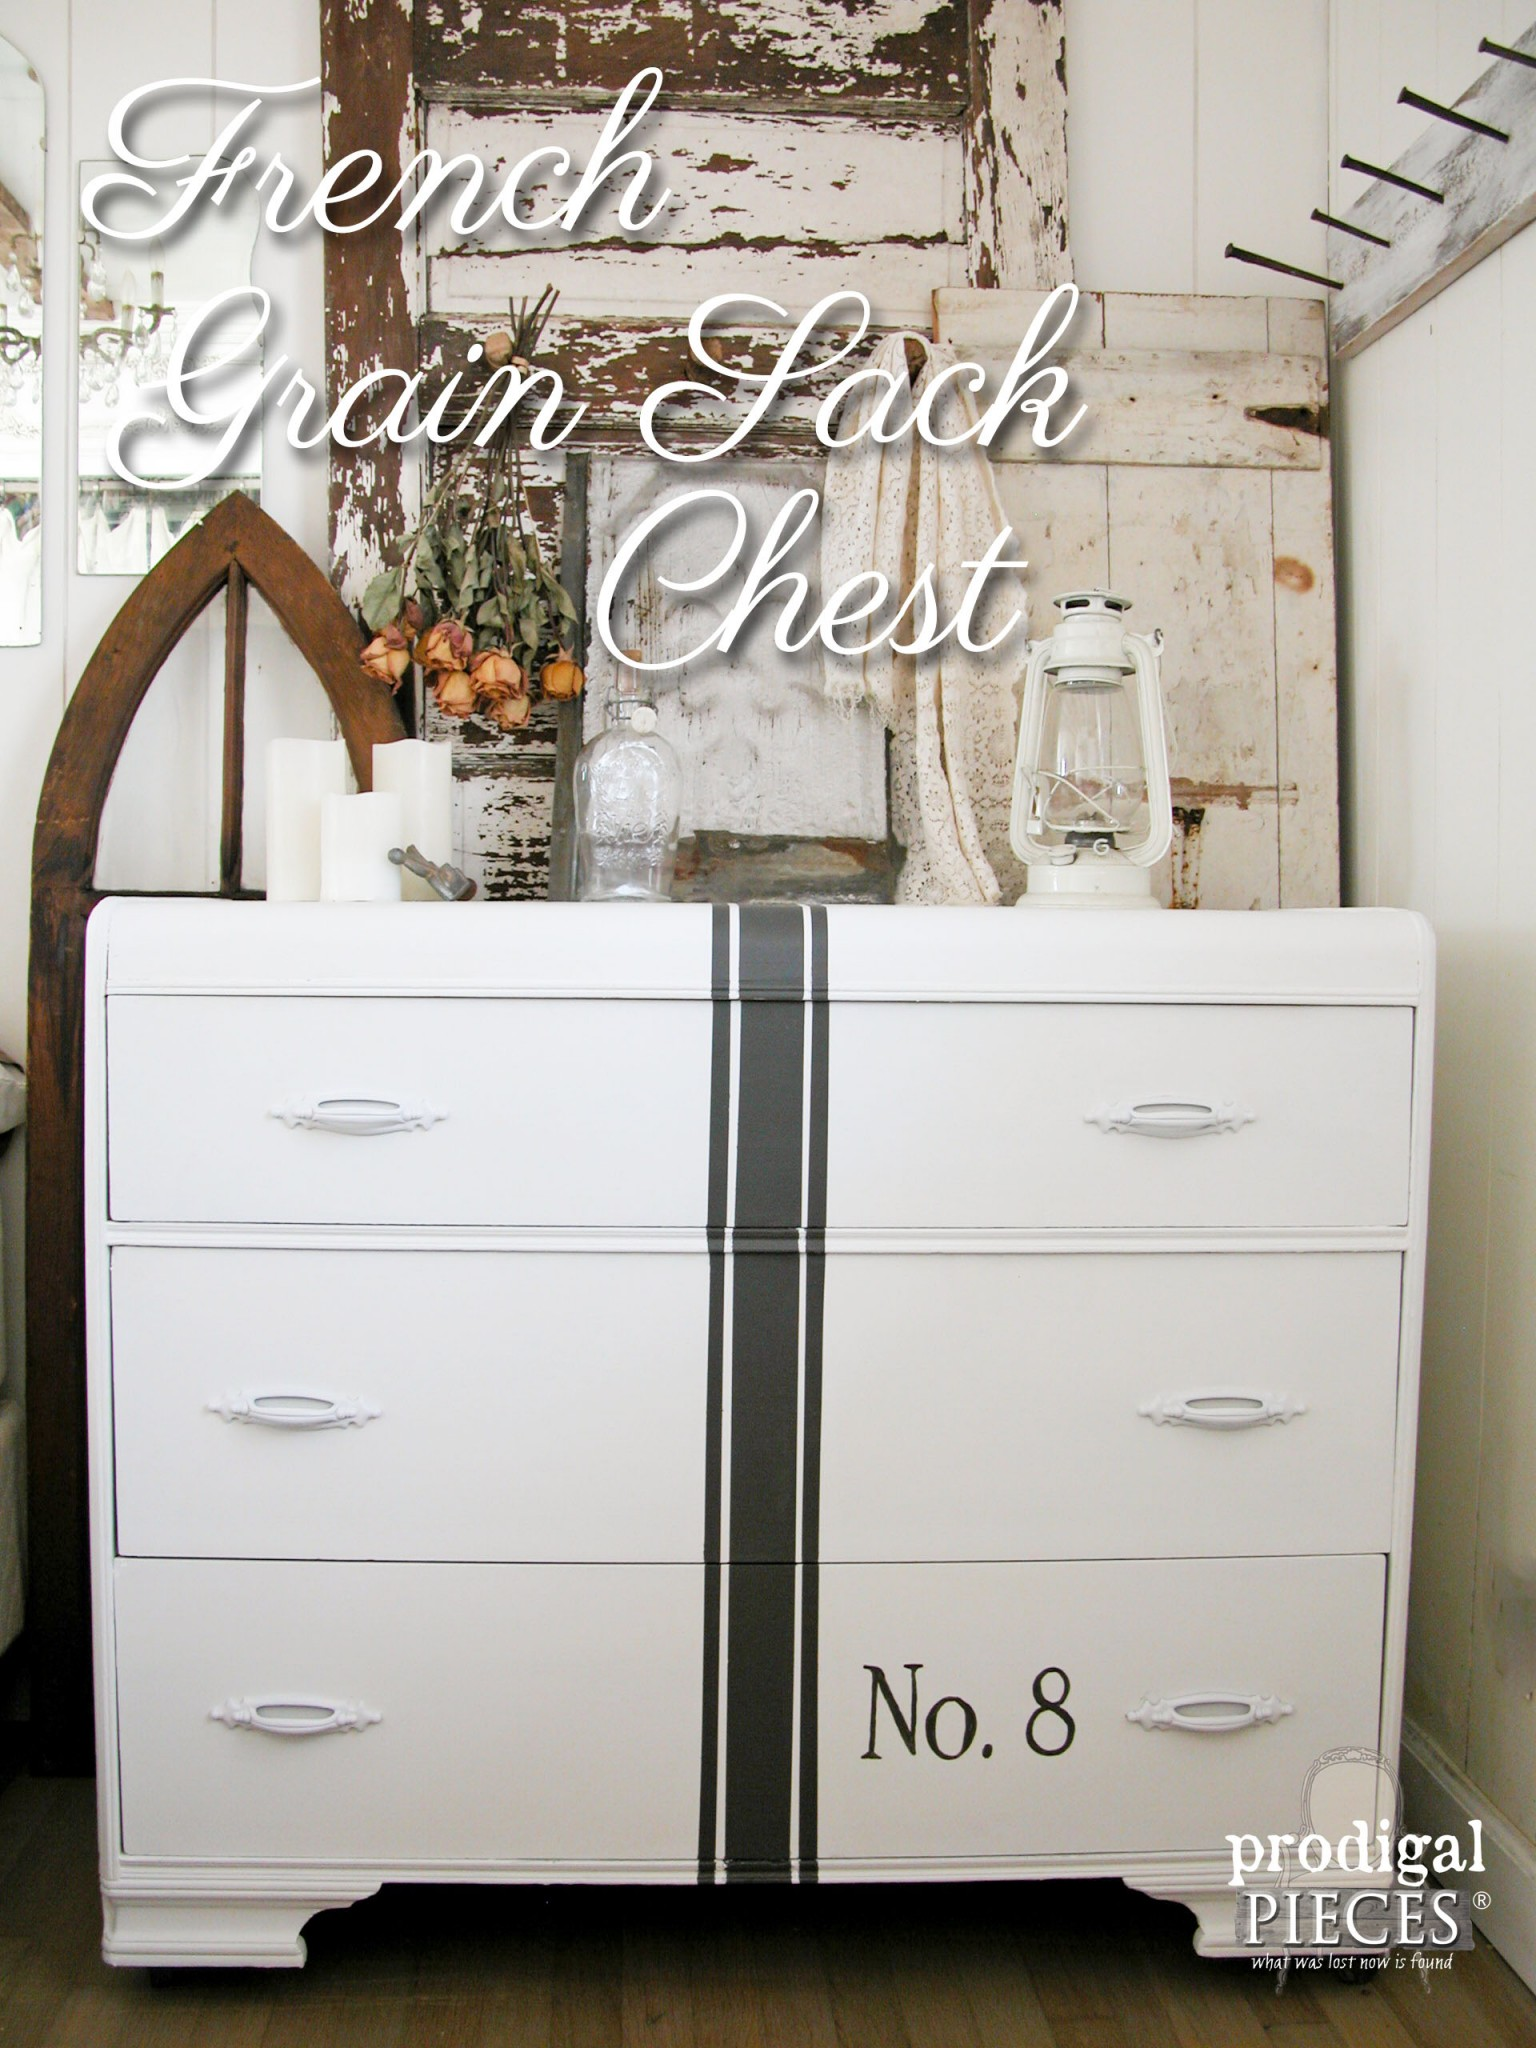 French Grain Sack Chest of Drawers by Prodigal Pieces | www.prodigalpieces.com